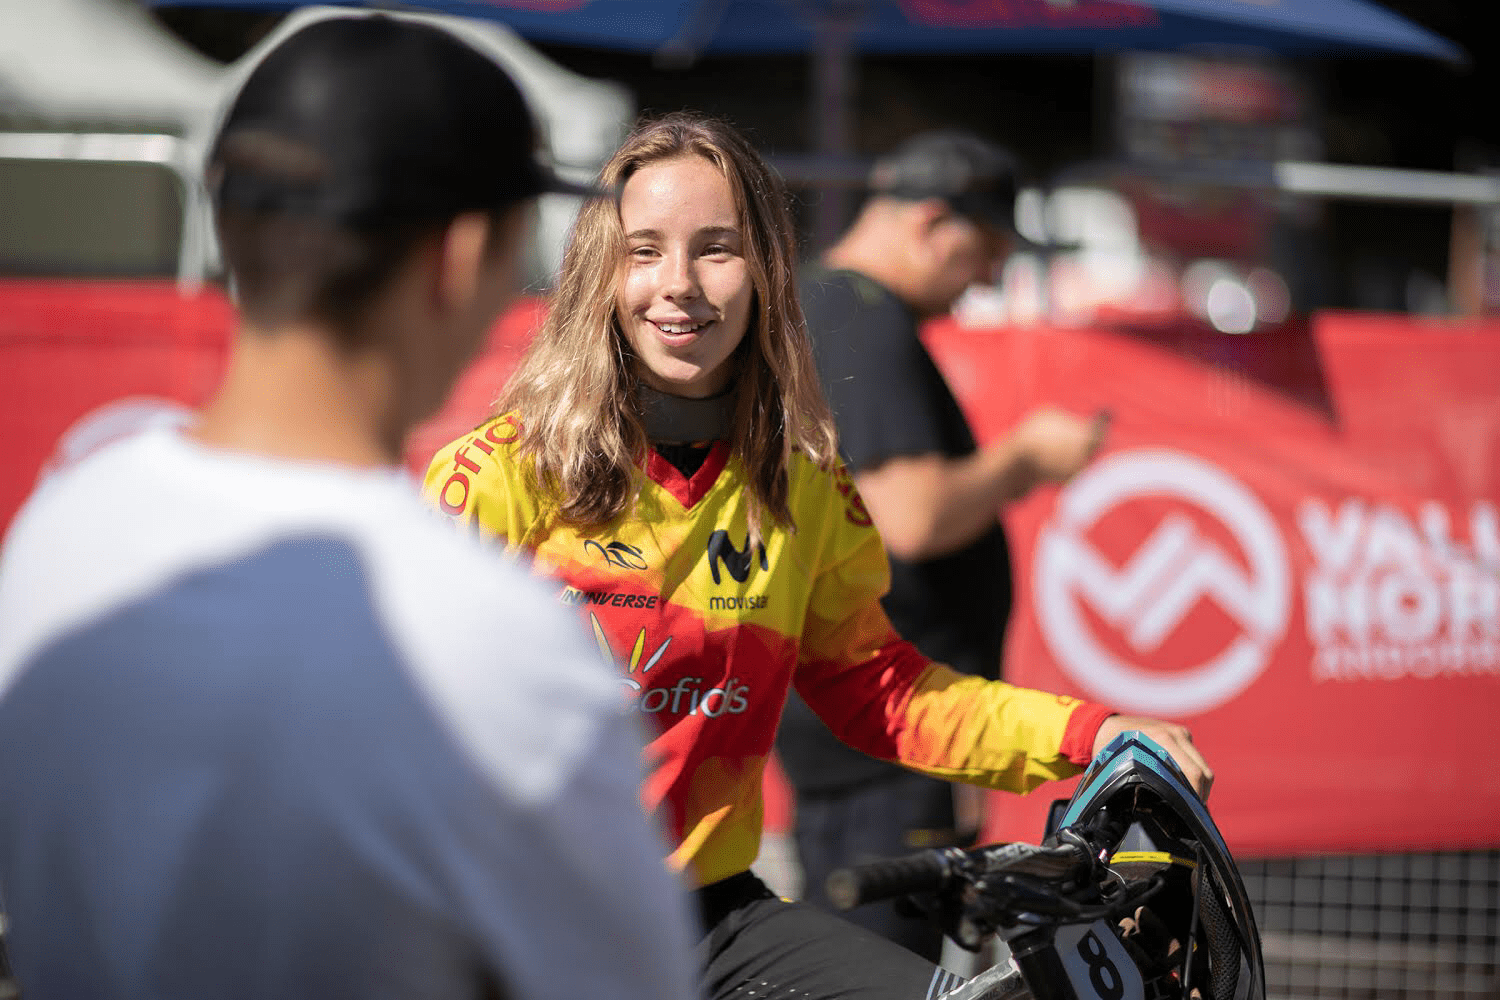 Ainhoa Ijurco portrait mercedes-benz-uci-mountain-bike world cup Valnord Andorra